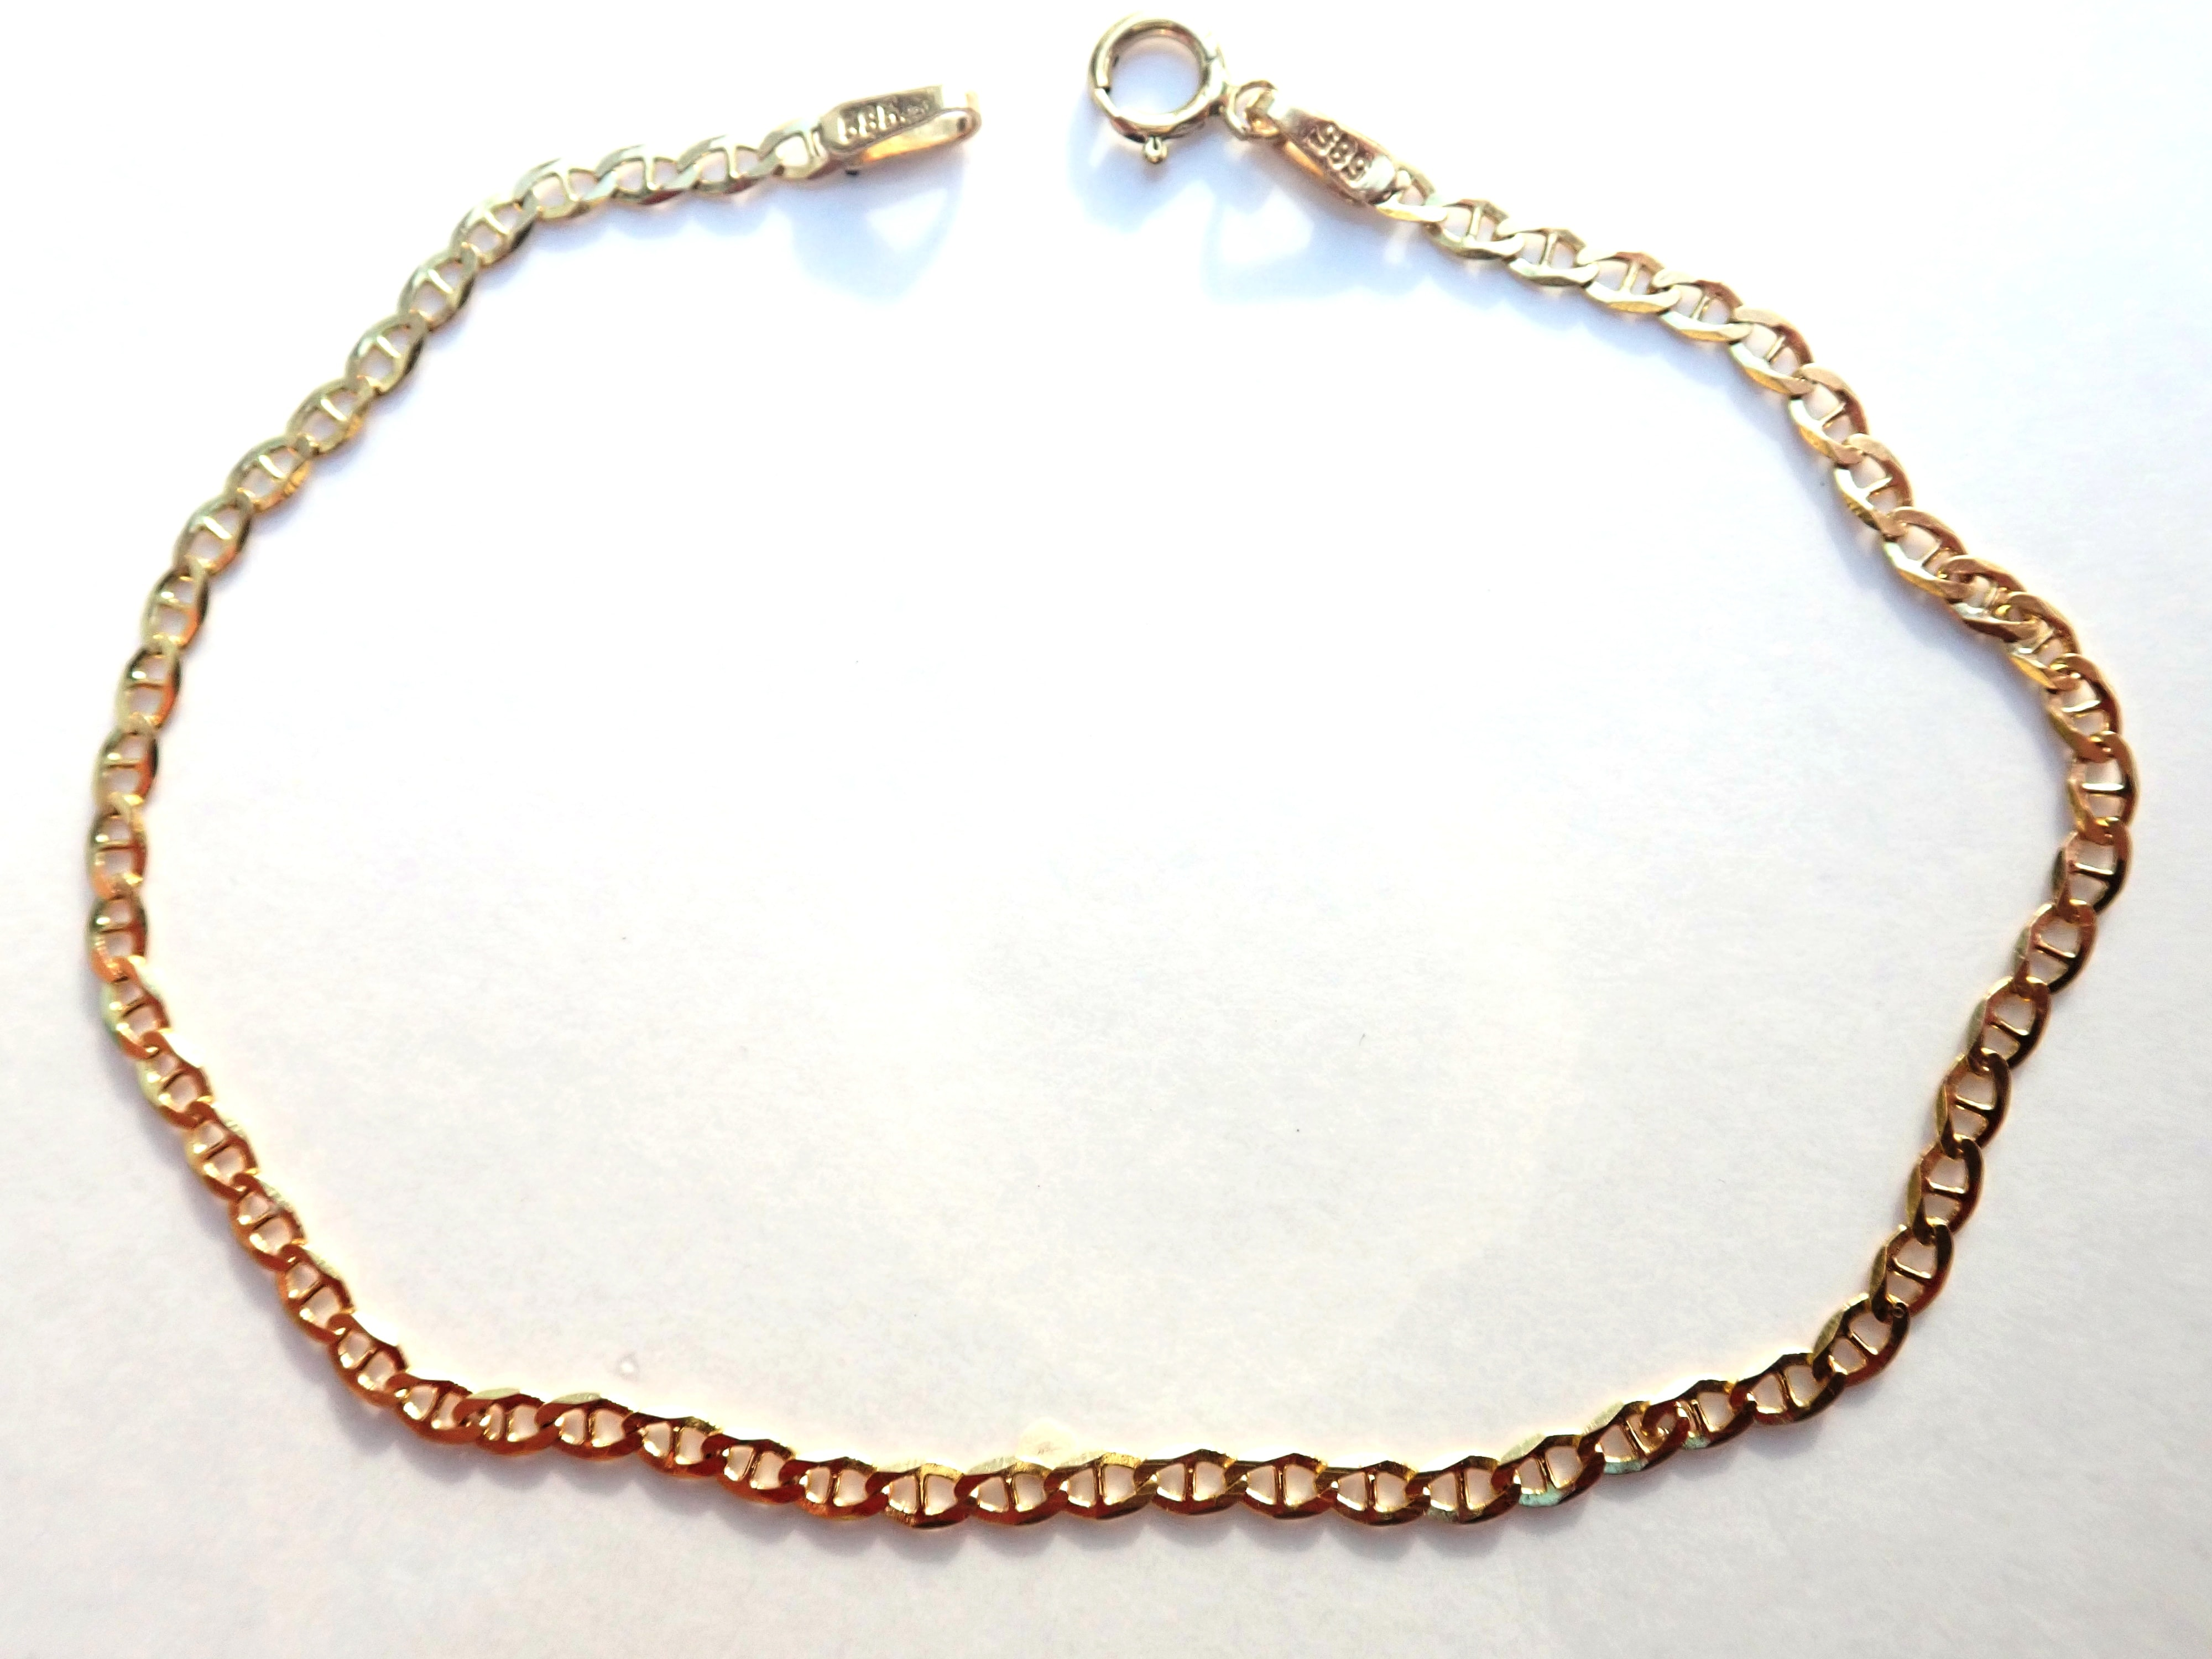 "AA000928 - 14k Gold Fancy Linked Curb Chain Linked Bracelet 7""- 1.3gms #35"